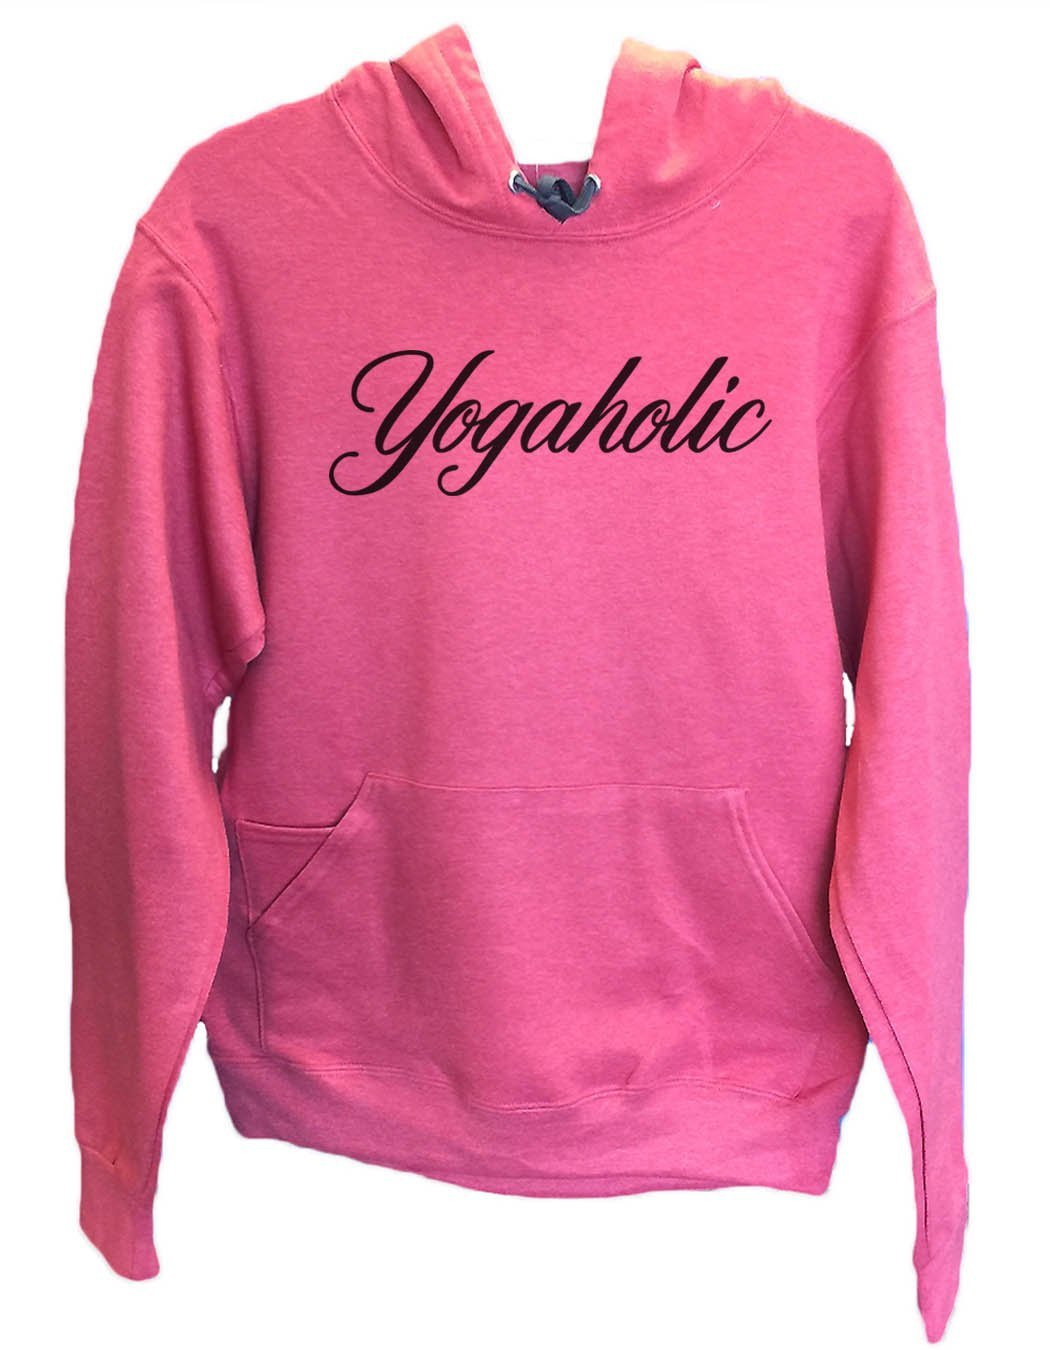 UNISEX HOODIE - Yogaholic - FUNNY MENS AND WOMENS HOODED SWEATSHIRTS - 2123 Funny Shirt